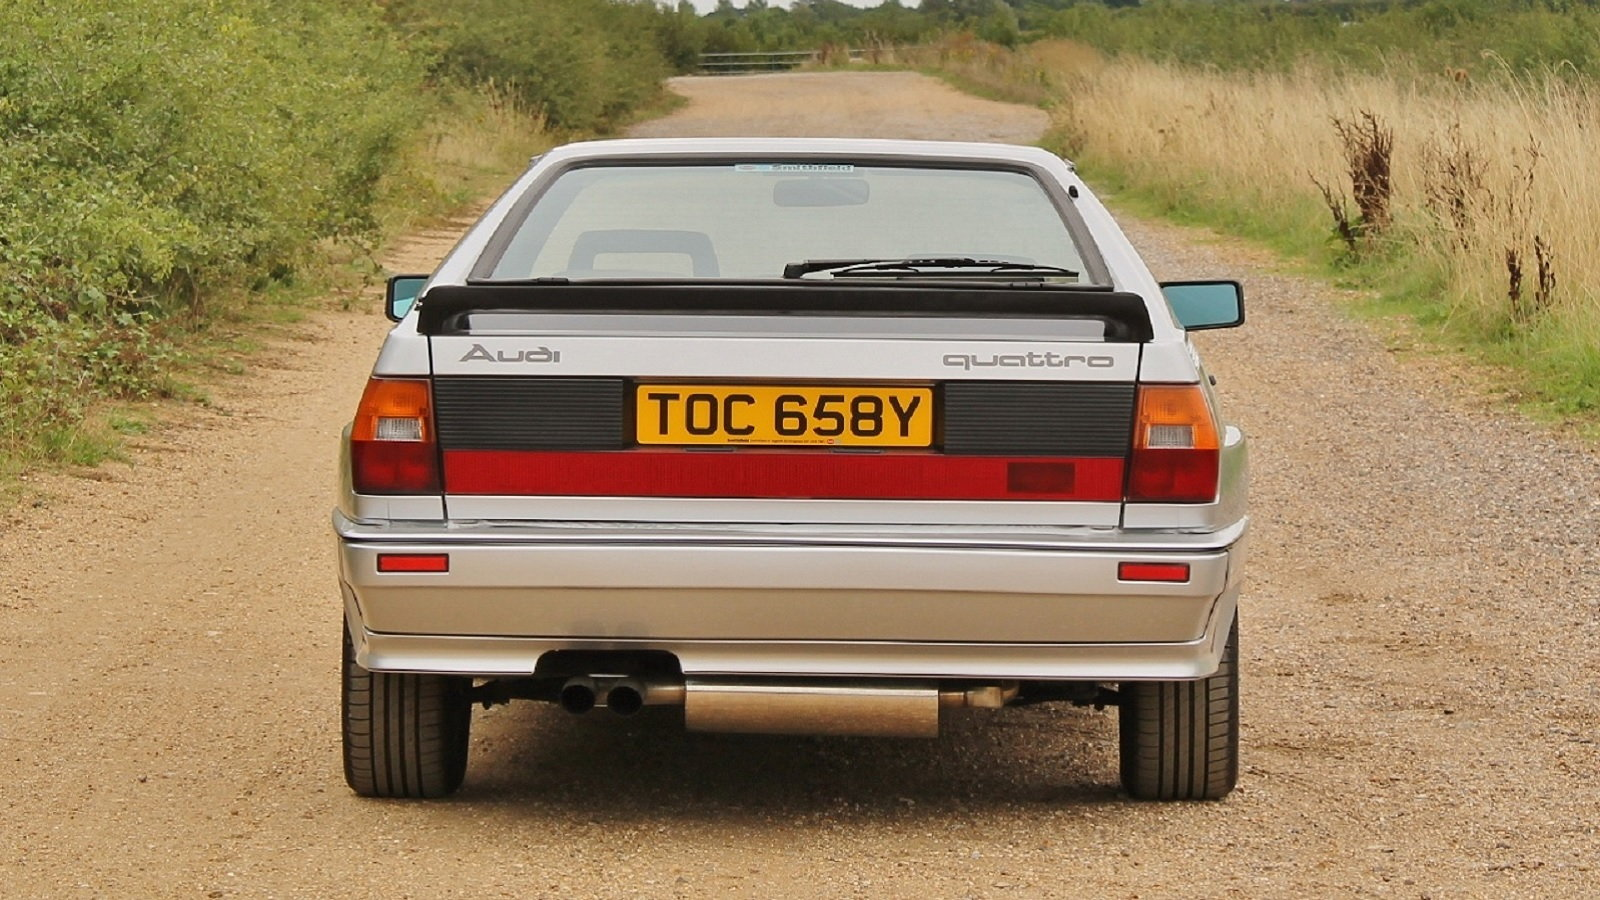 What about the other RHD Quattro?